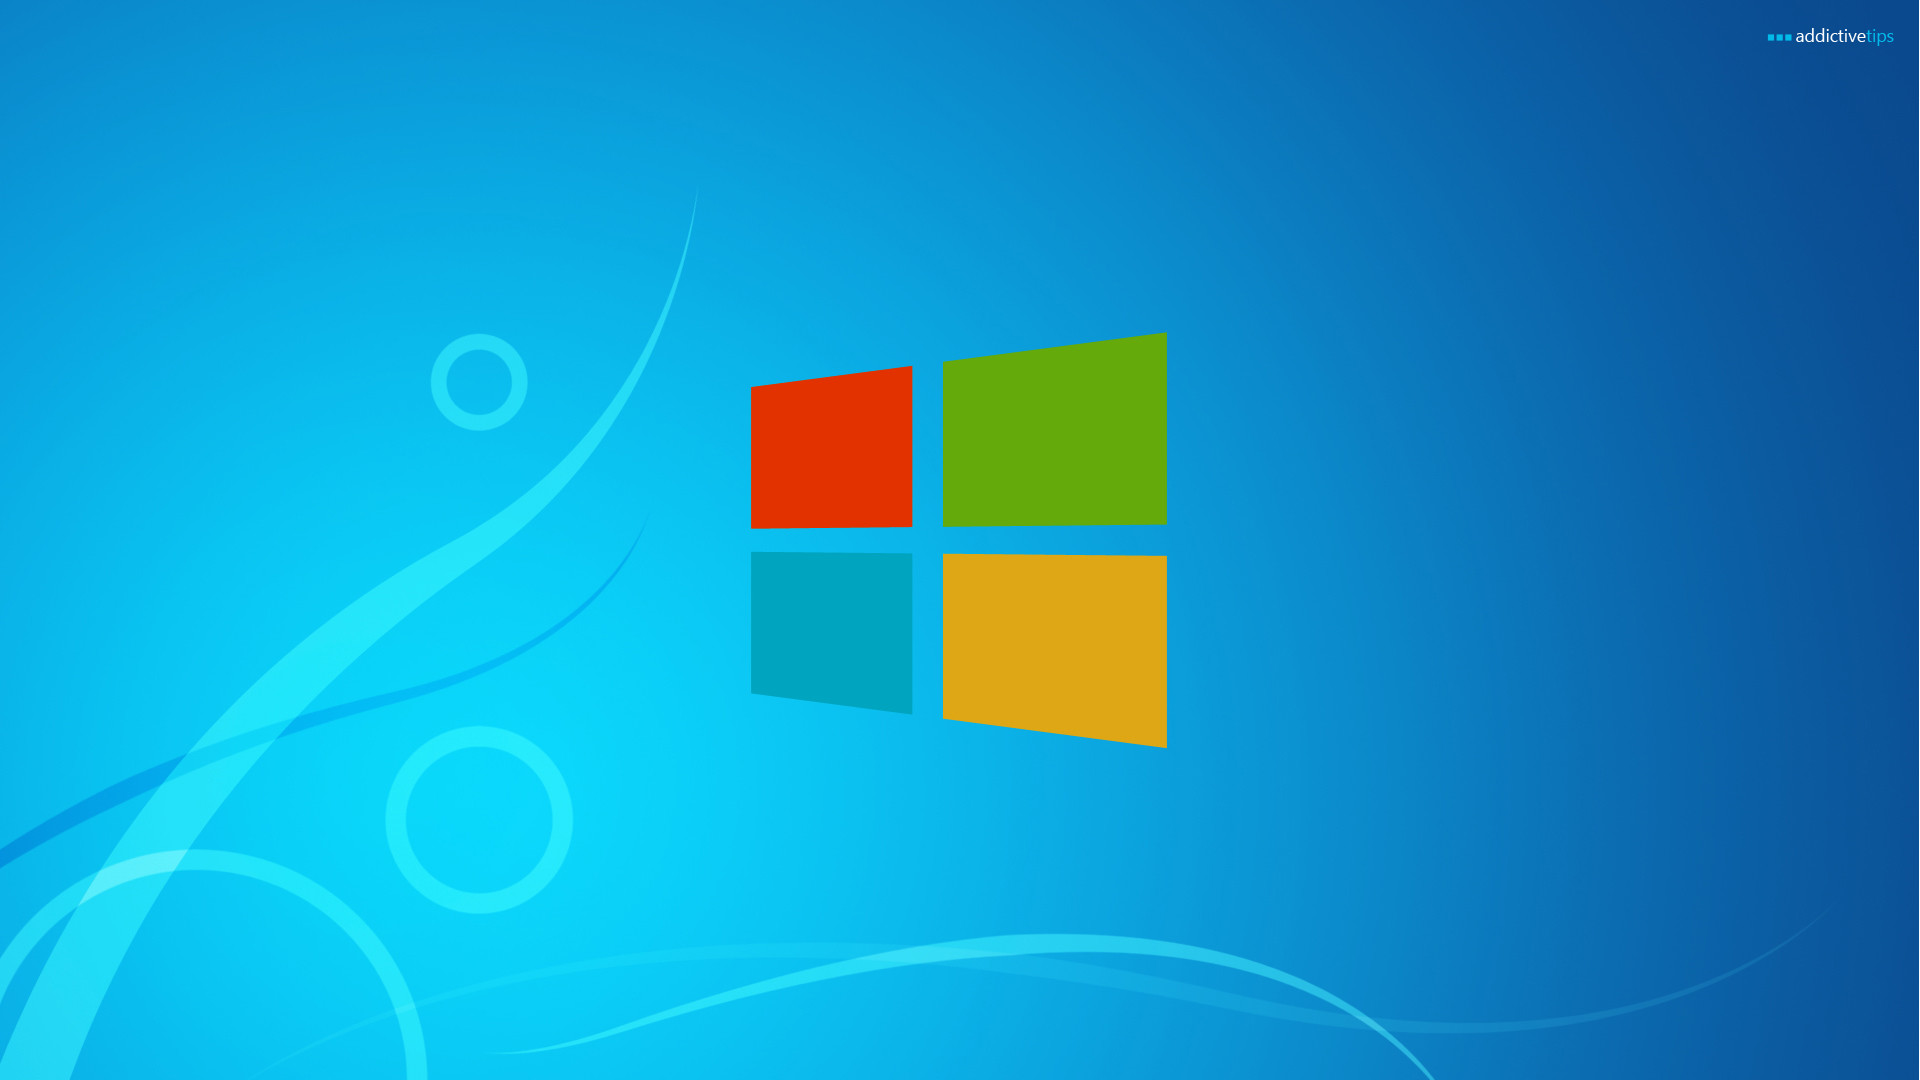 1920x1080 Image for Windows 10 HD Desktop Wallpaper